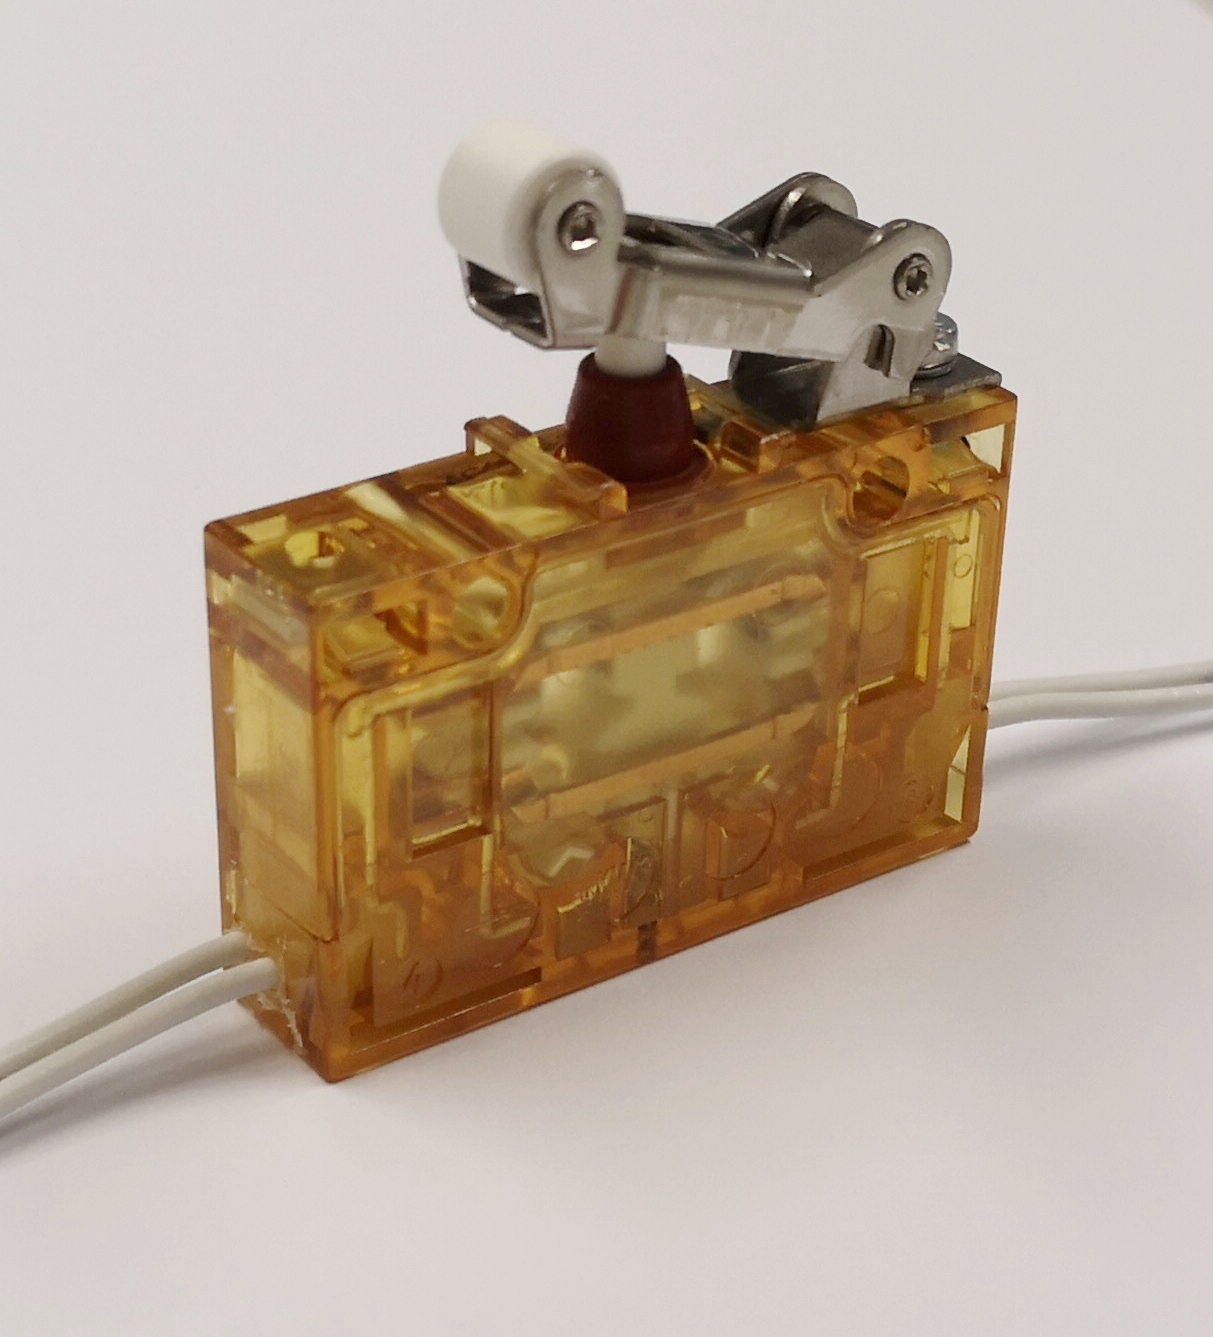 S947 Series Snap Action Switch